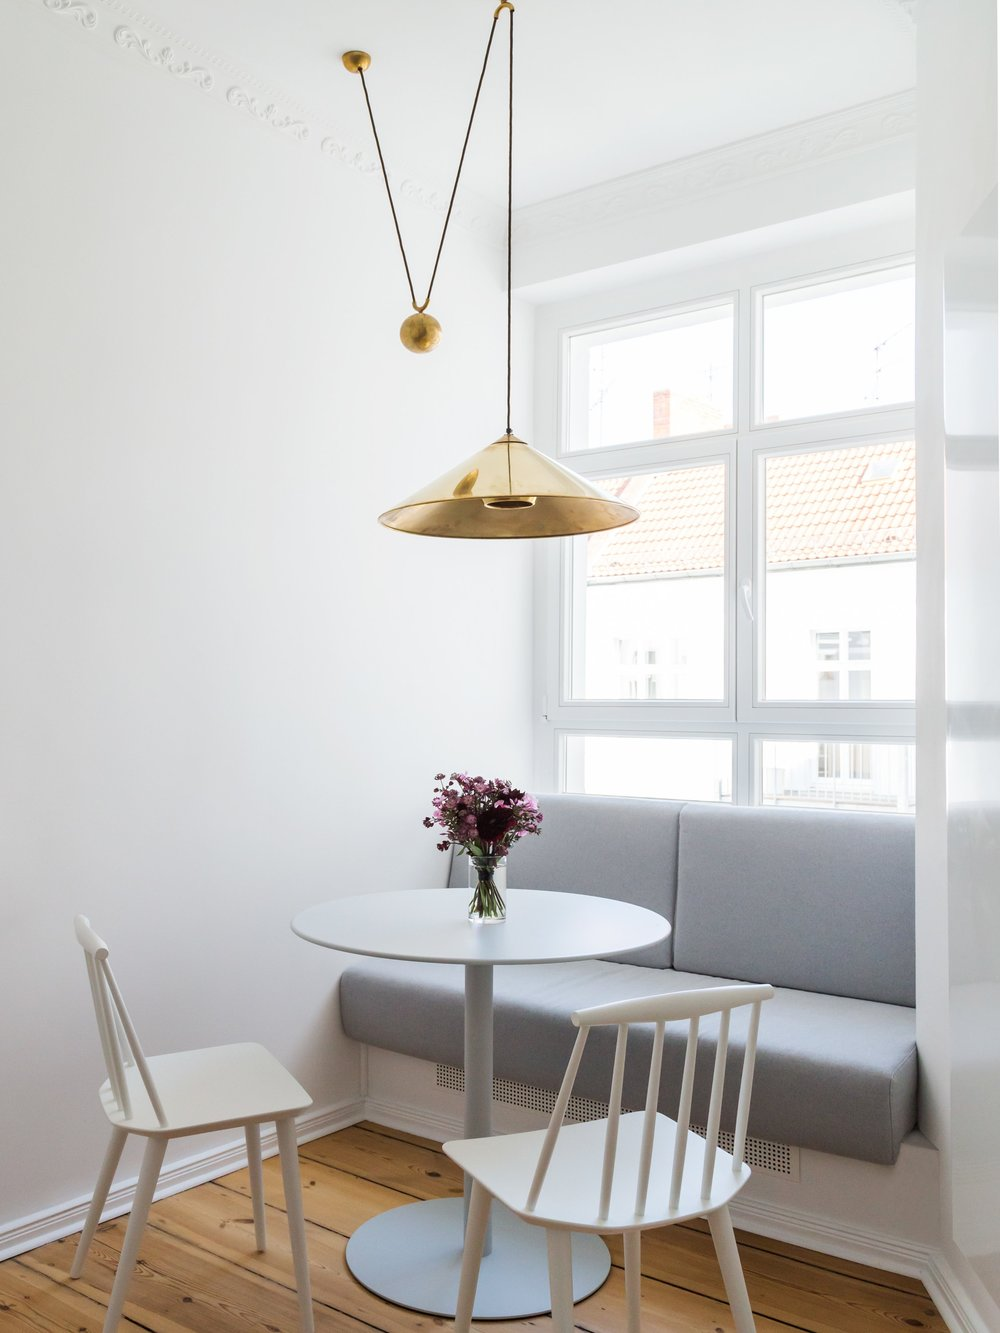 I love this sweet little kitchen nook in this Berlin flat designed by the firm  The White Arrow.  They detailed the seat cushion and the radiator under the window in a very clean way.